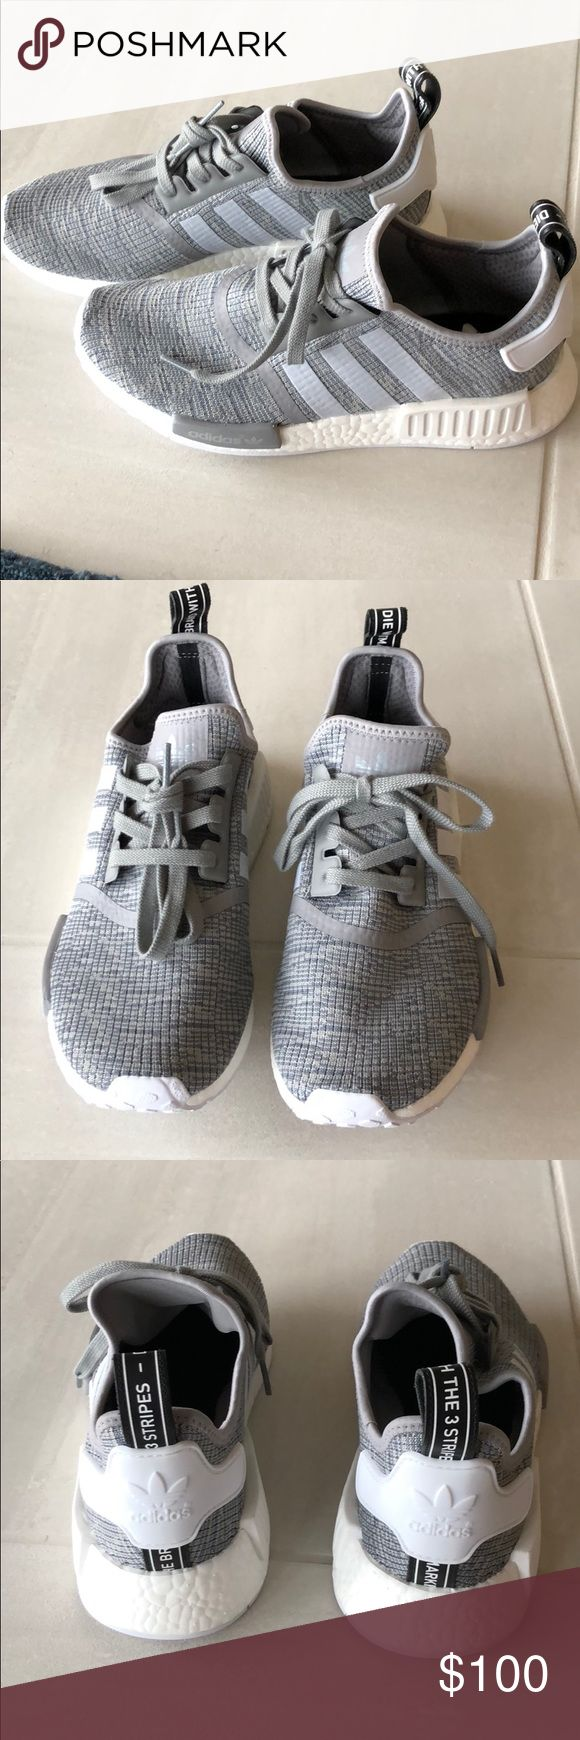 Adidas Boost Shoes Gray and white men's adidas shoes- never worn, bought and too big. Size 8.5 adidas Shoes Athletic Shoes